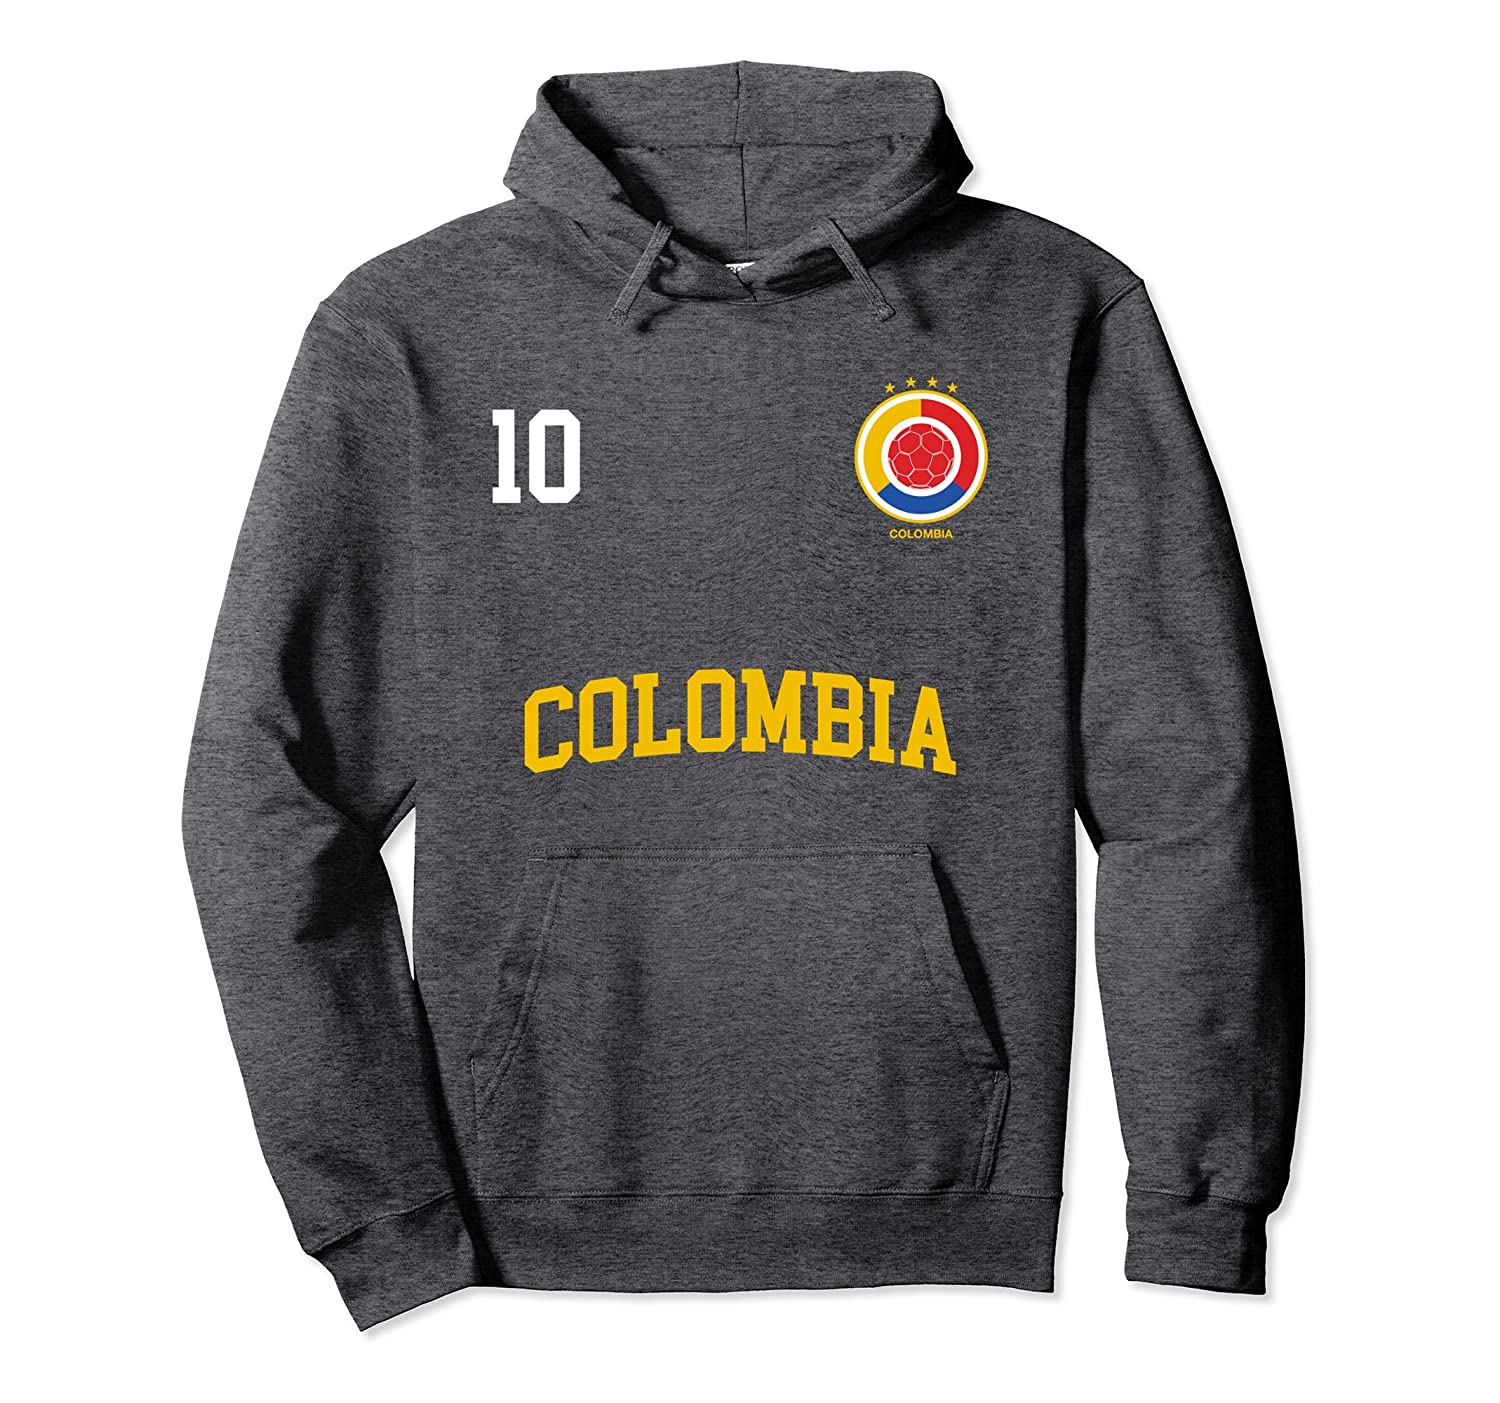 2750e4cd231 Colombia Soccer Hoodie No. 10 Colombian Flag Camiseta Futbol-alottee gift